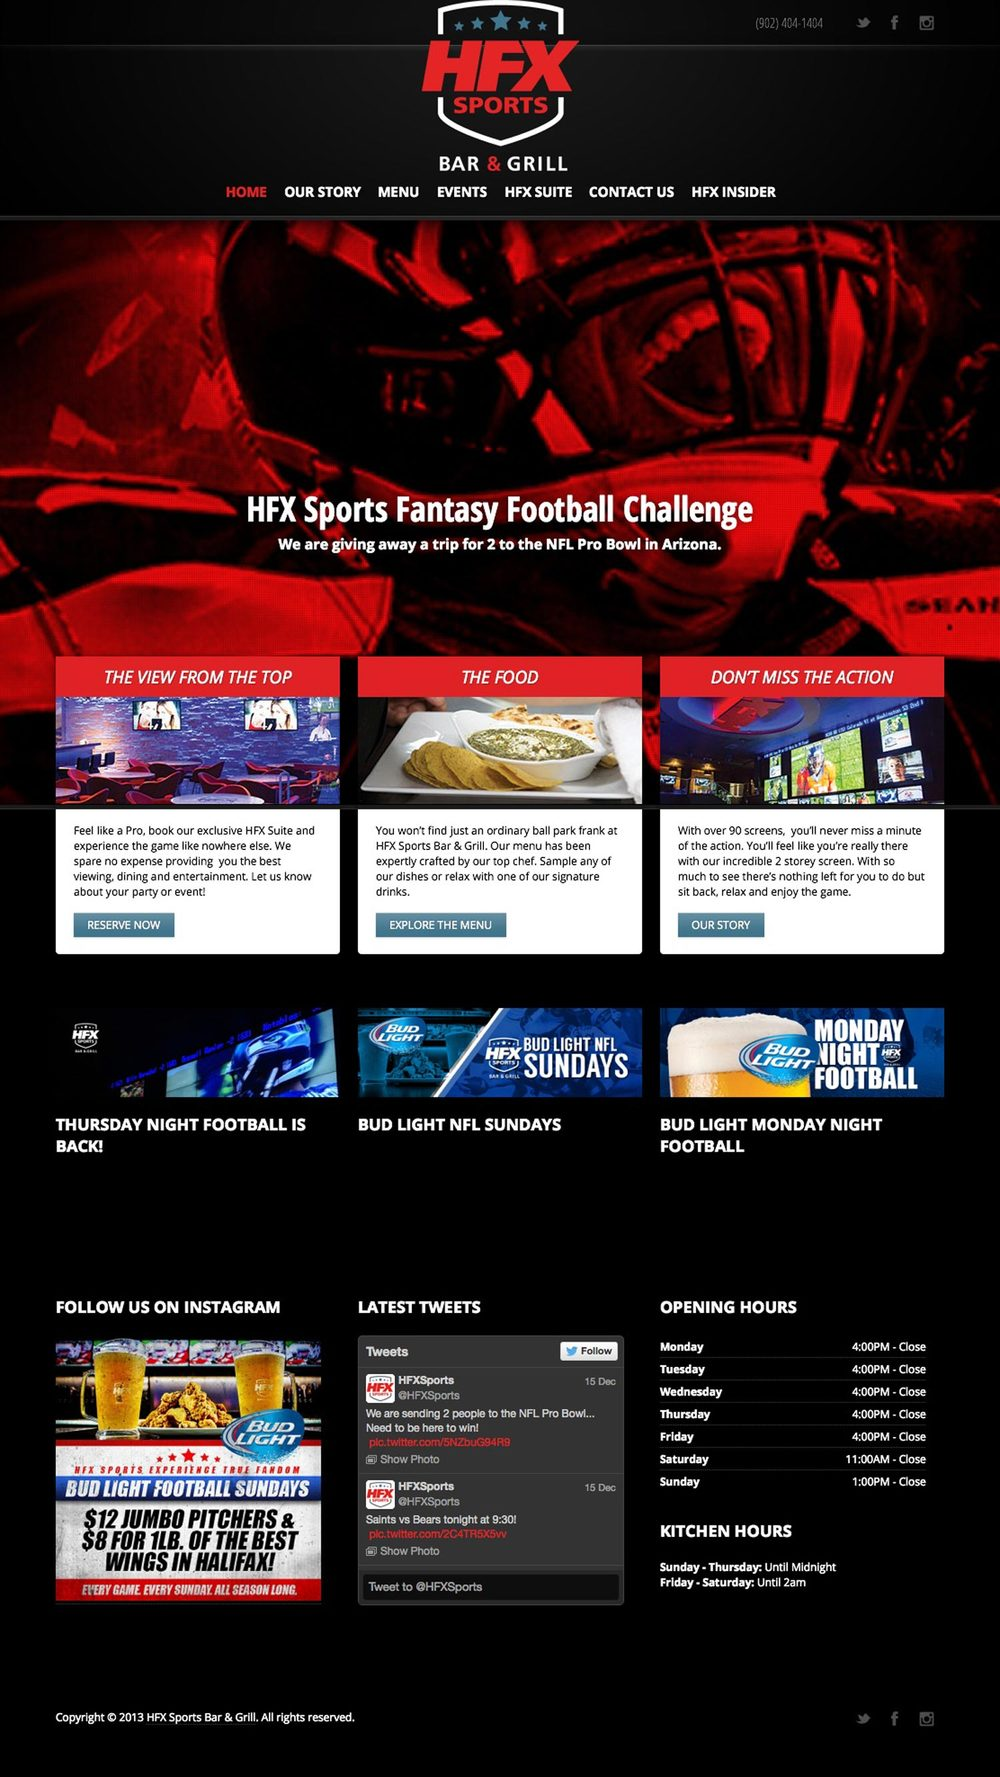 HFX Sports Bar & Grill website